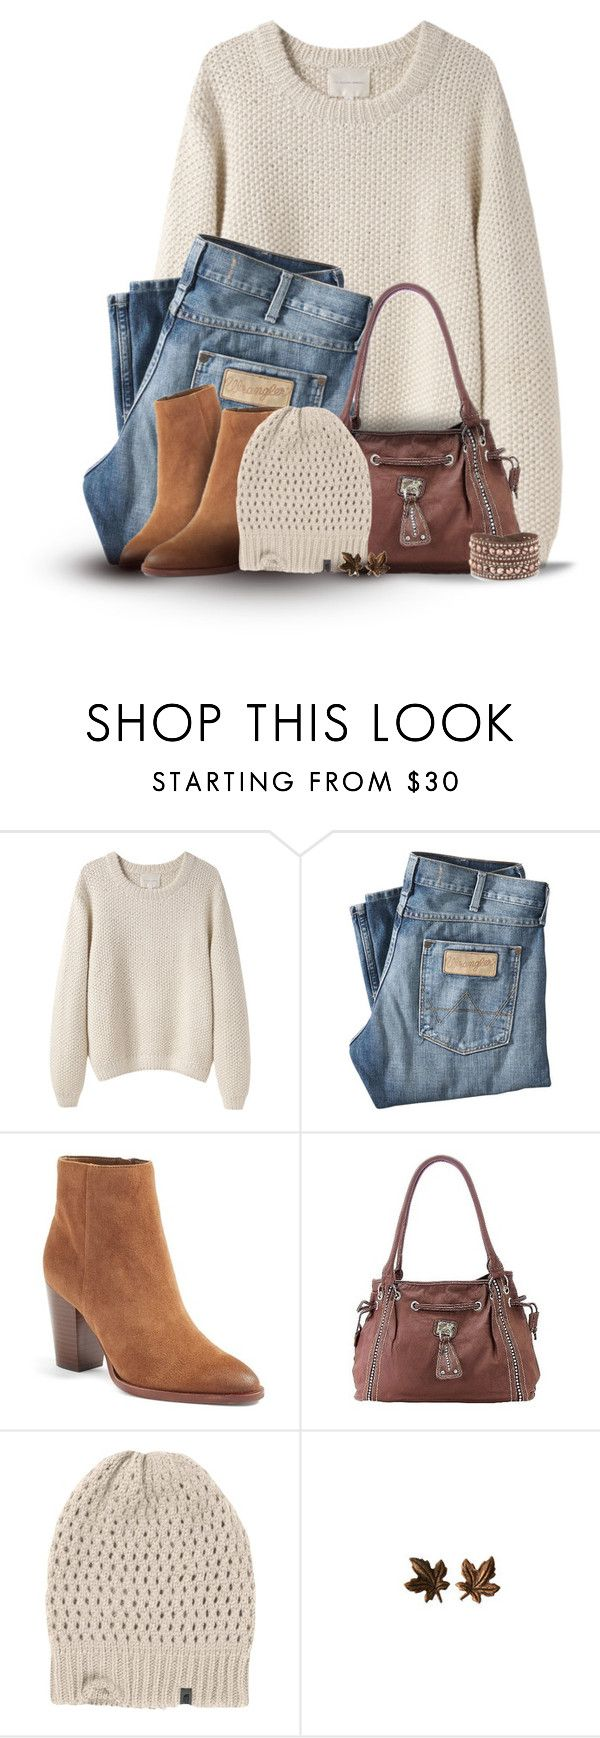 """Neutral for Fall"" by cindycook10 ❤ liked on Polyvore featuring La Garçonne Moderne, Wrangler, Sam Edelman, The North Face and Swarovski"